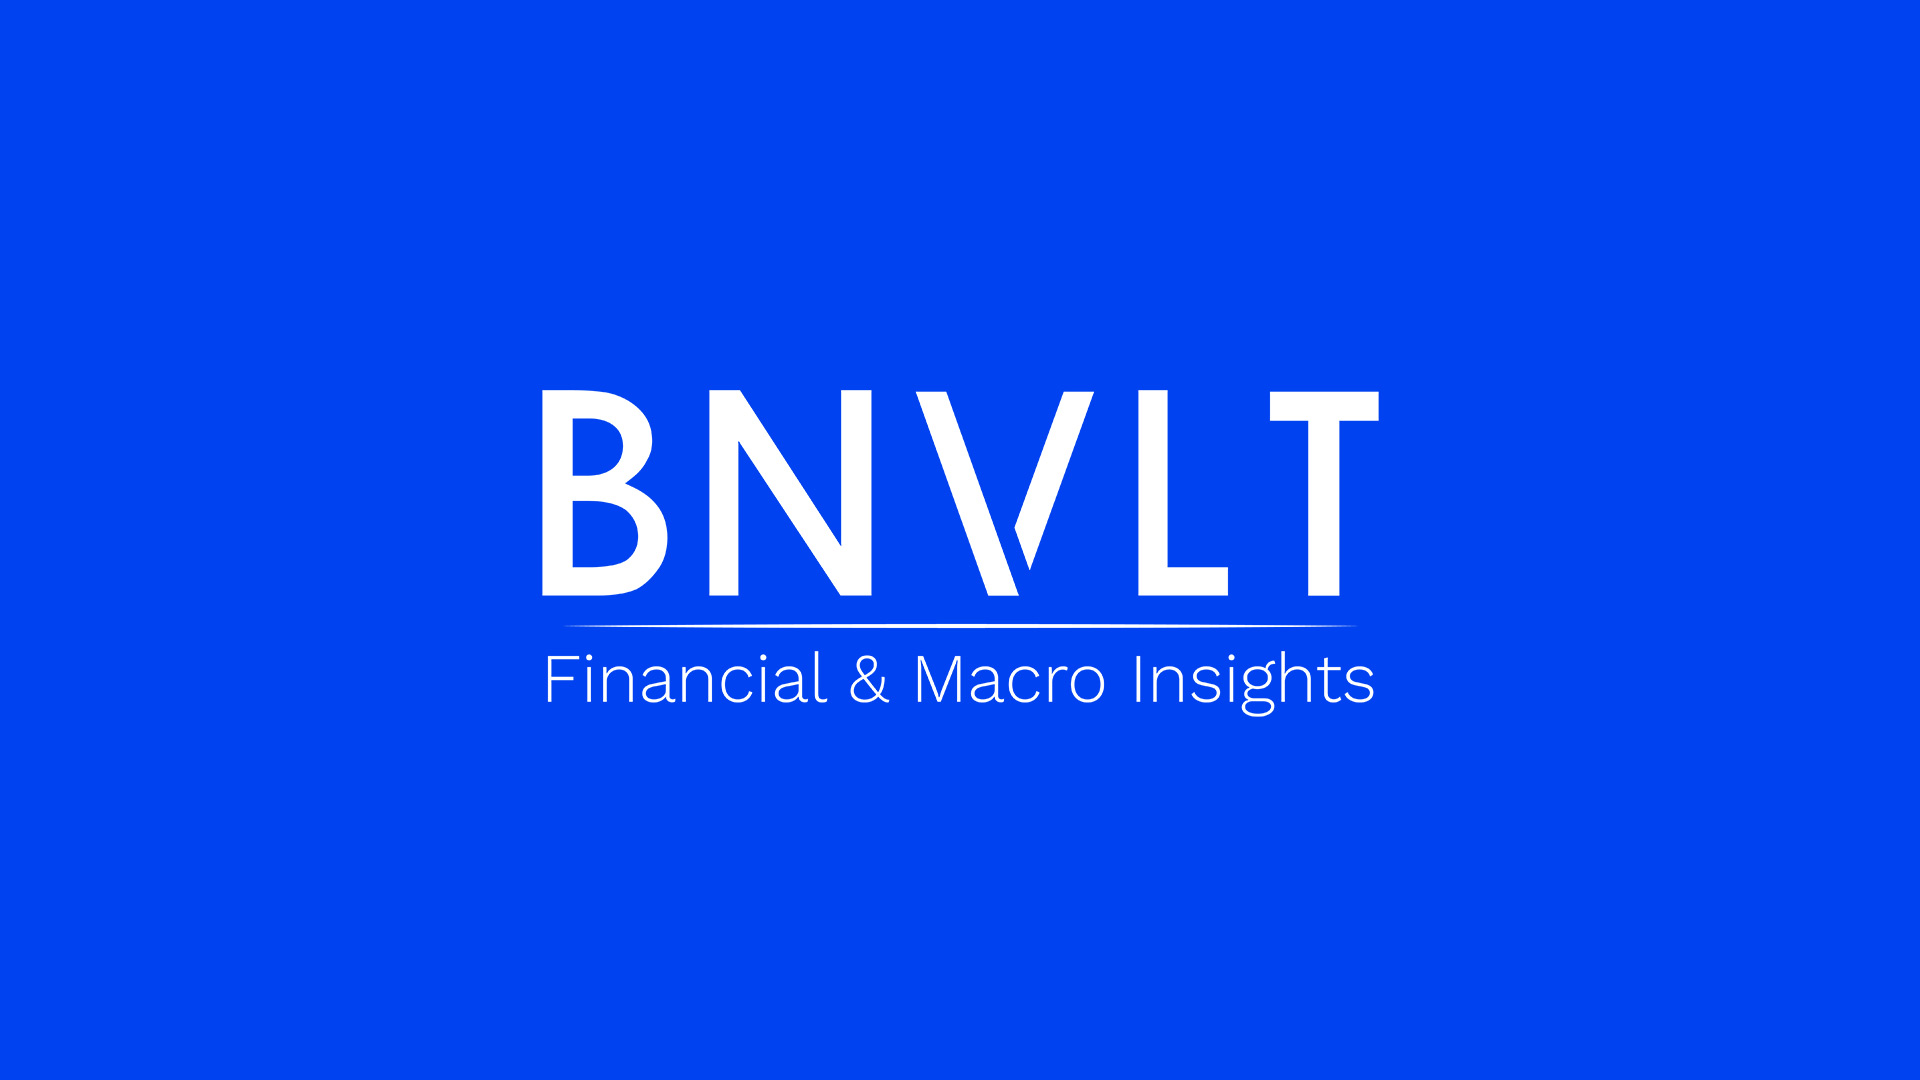 Logo Financial and Macro Insights by BNVLT